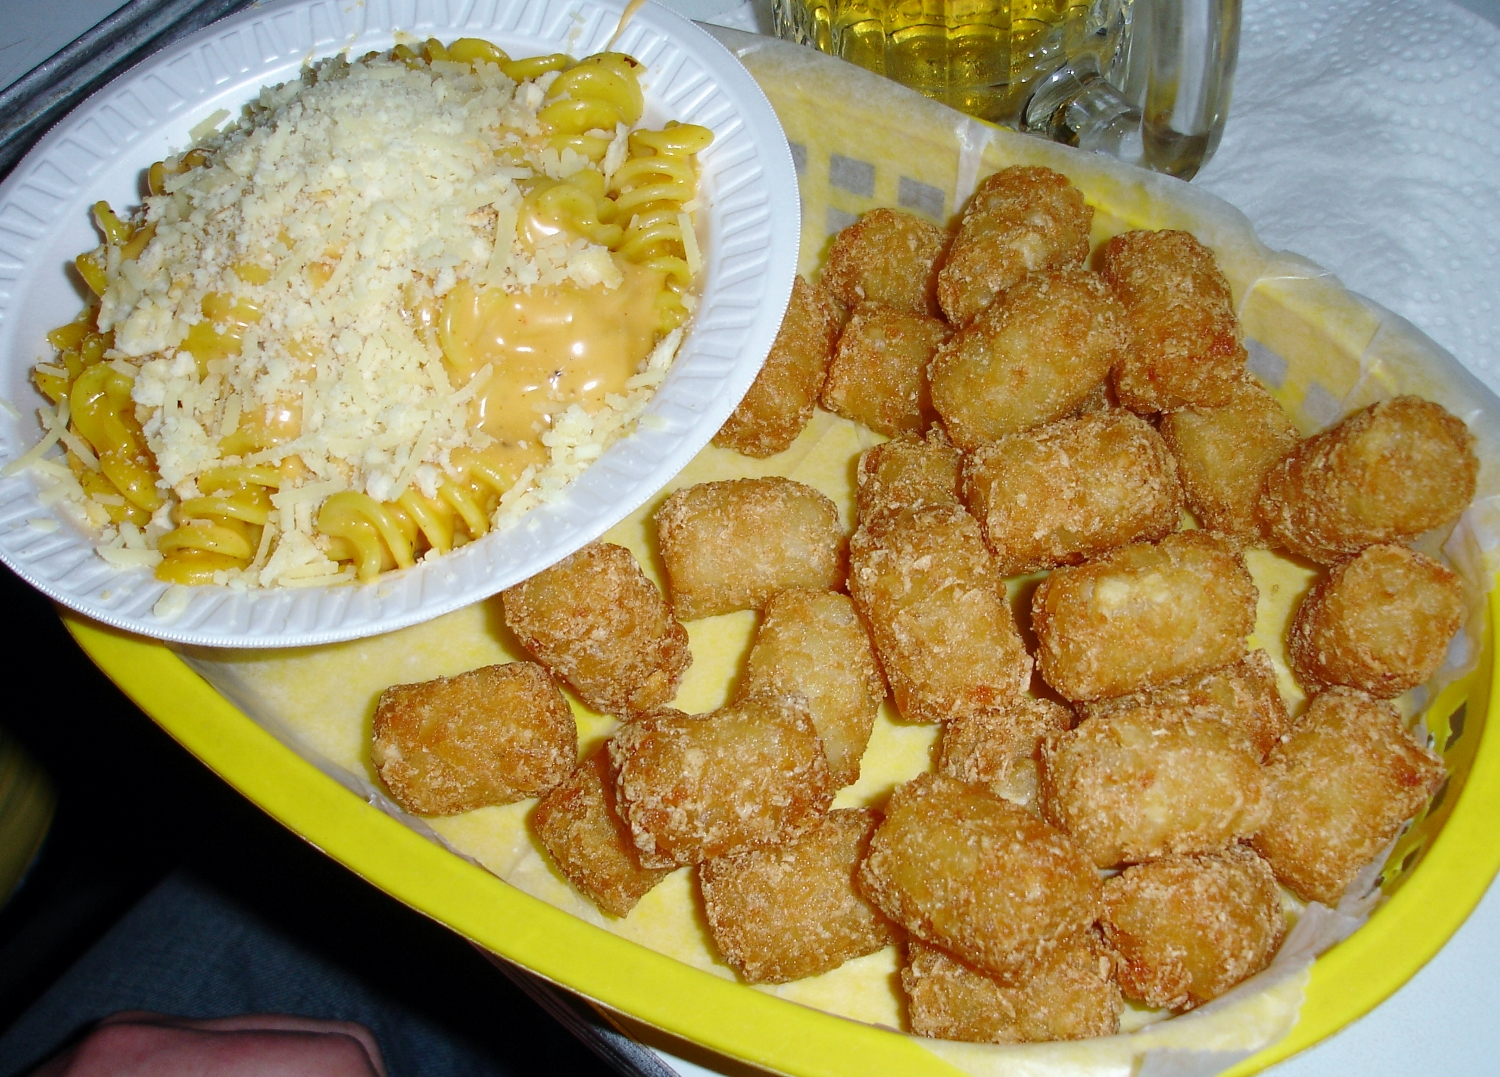 Tater Tots are the patron potato of Trailer Park Lounge. Here they are served with mac and cheese, iconoclastically based on fusilli.